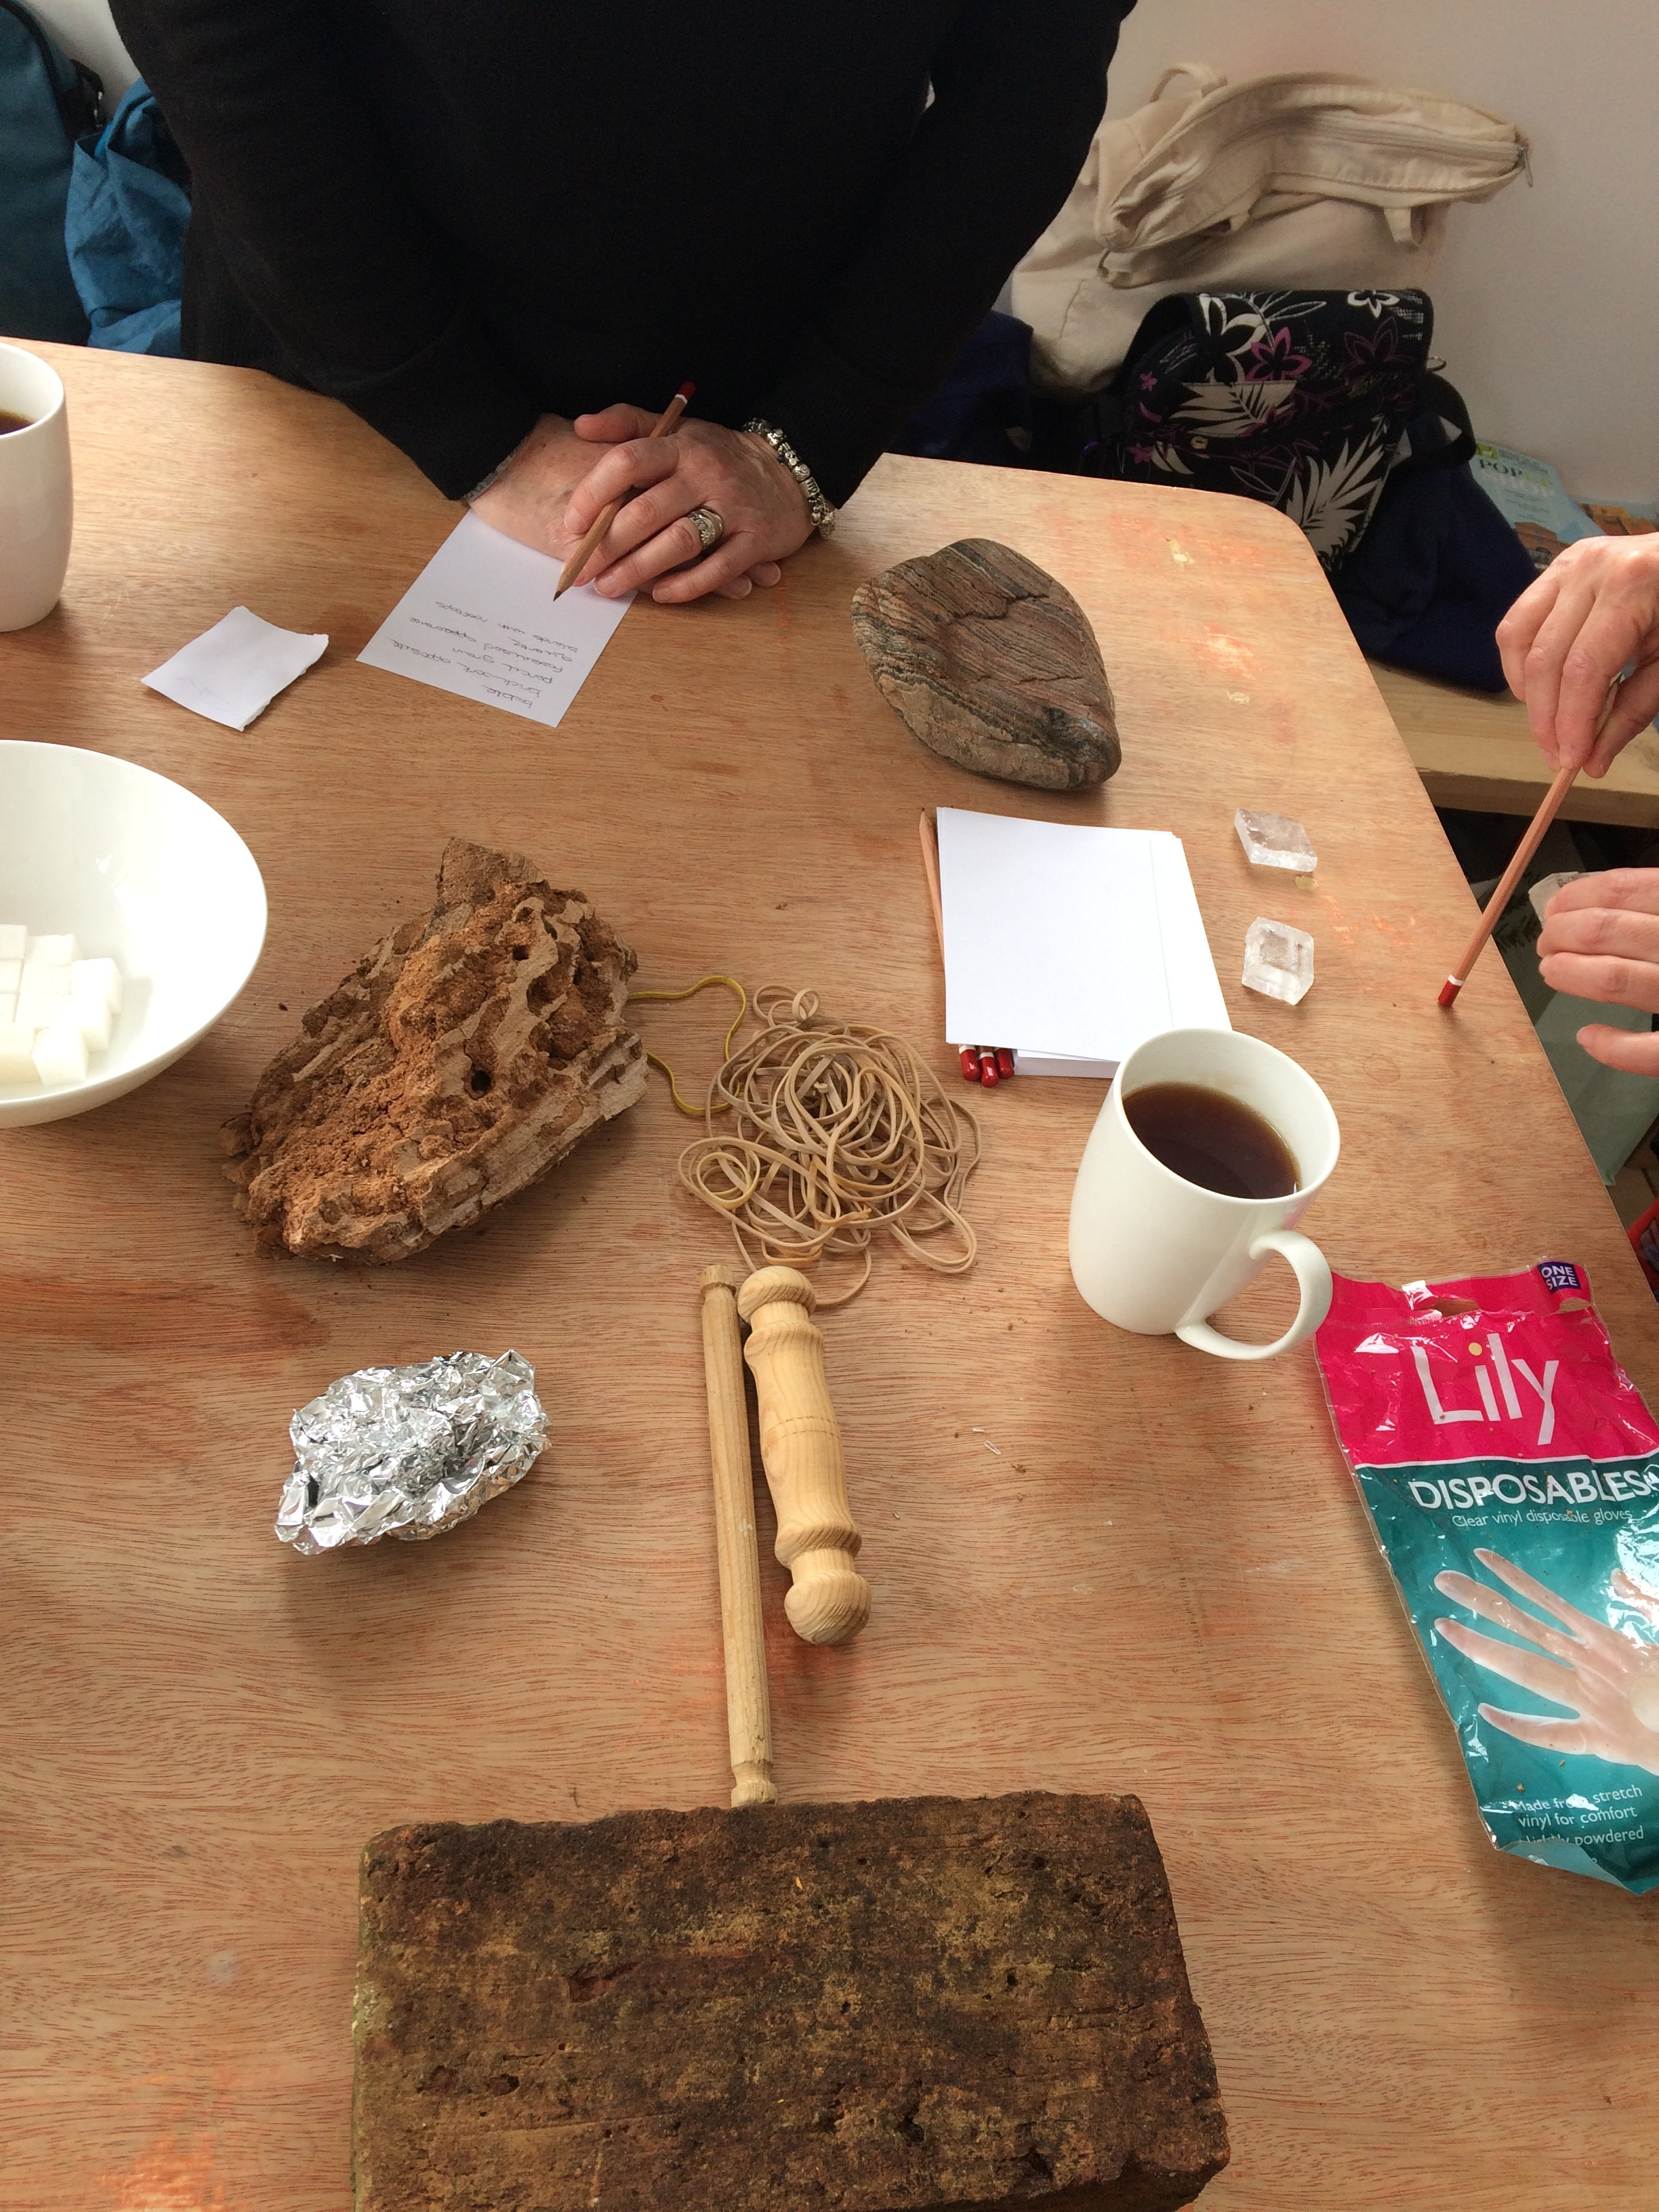 Workshop in progress with a group from West Norfolk MIND